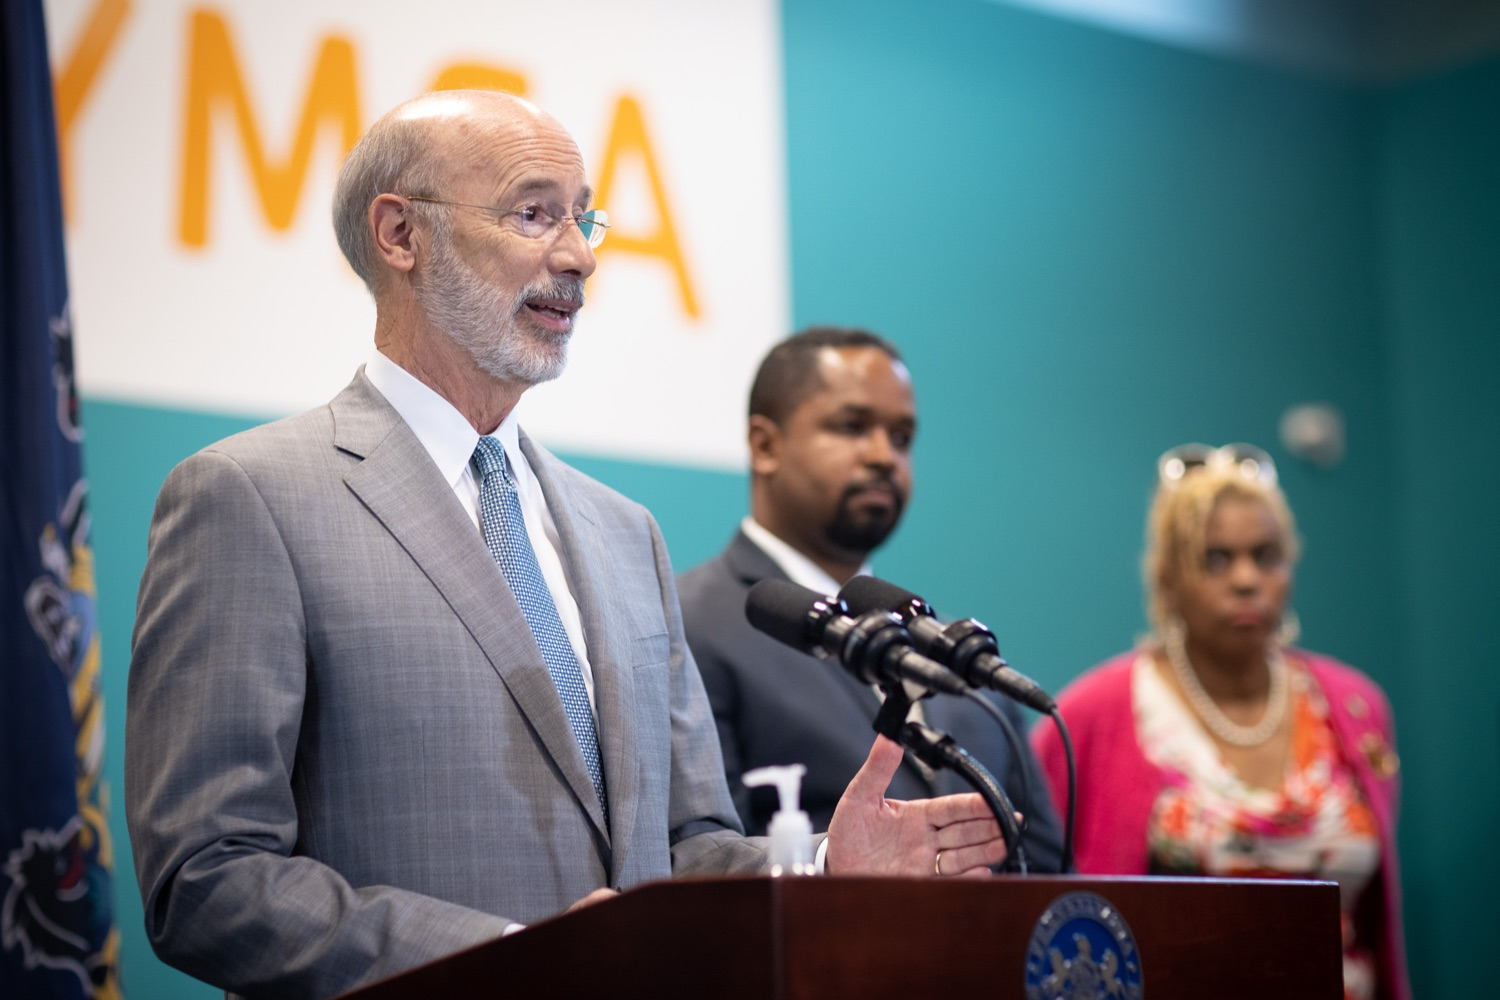 """<a href=""""https://filesource.wostreaming.net/commonwealthofpa/photo/18815_gov_voterRights_dz_017.jpg"""" target=""""_blank"""">⇣Download Photo<br></a>Pennsylvania Governor Tom Wolf speaking with the press.  With some politicians spreading lies about our elections to divide us, Governor Tom Wolf today vowed to protect the freedom to vote and oppose legislation that would create barriers to voting and silence the voices of some Pennsylvanians. These are the same lies that led directly to the appalling assault on our U.S. Capitol and our democracy on January 6, and now, just a few short months later, the same people who fomented, encouraged, and joined that mob are again emerging to undermine the fabric of our nation.   Harrisburg, PA  June 9, 2021"""